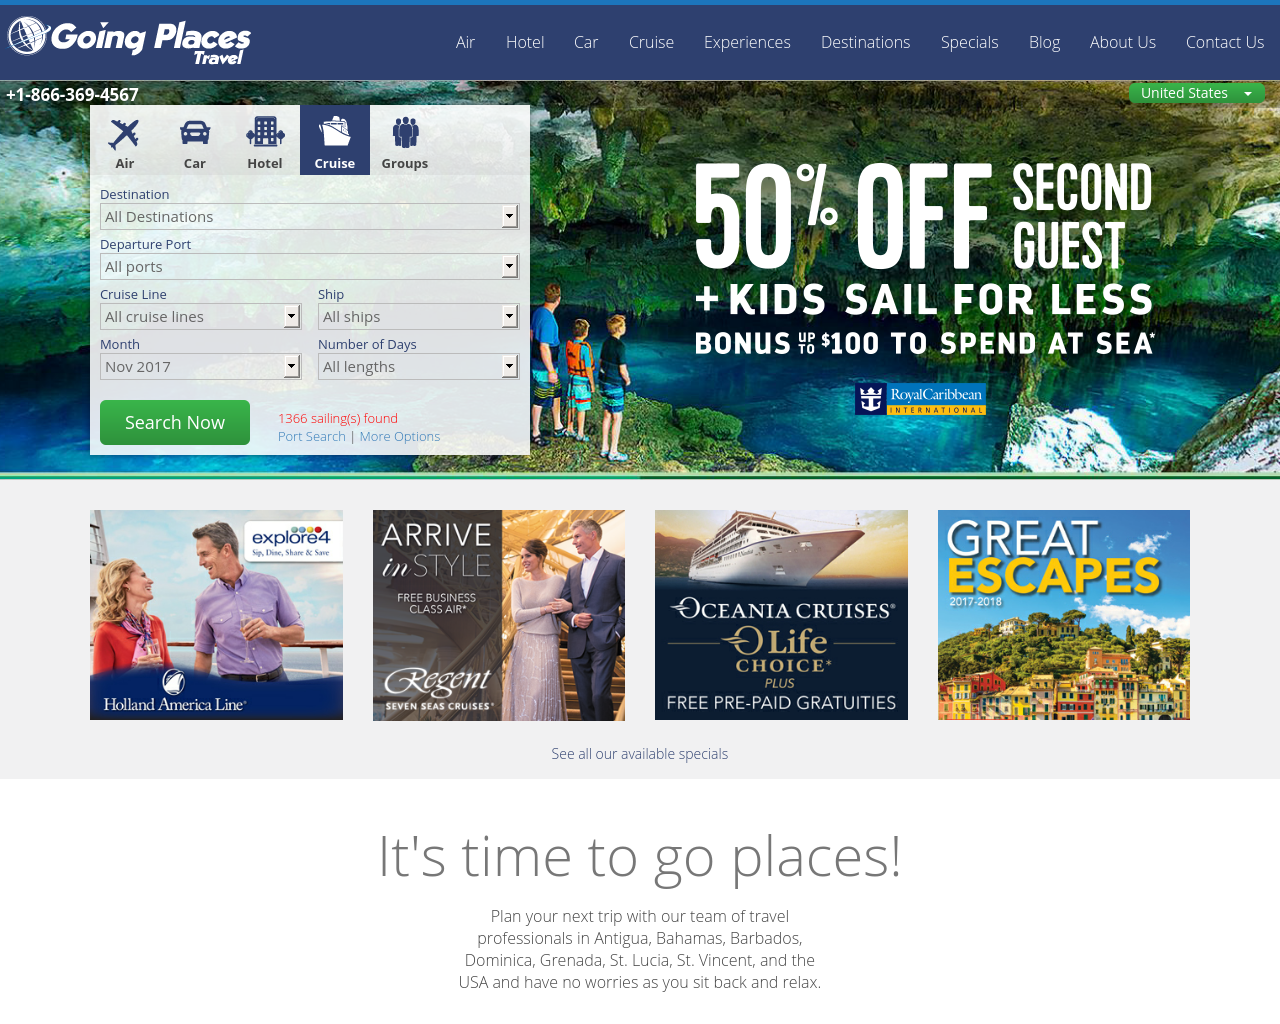 Going-Places-Travel-Advertising-Reviews-Pricing